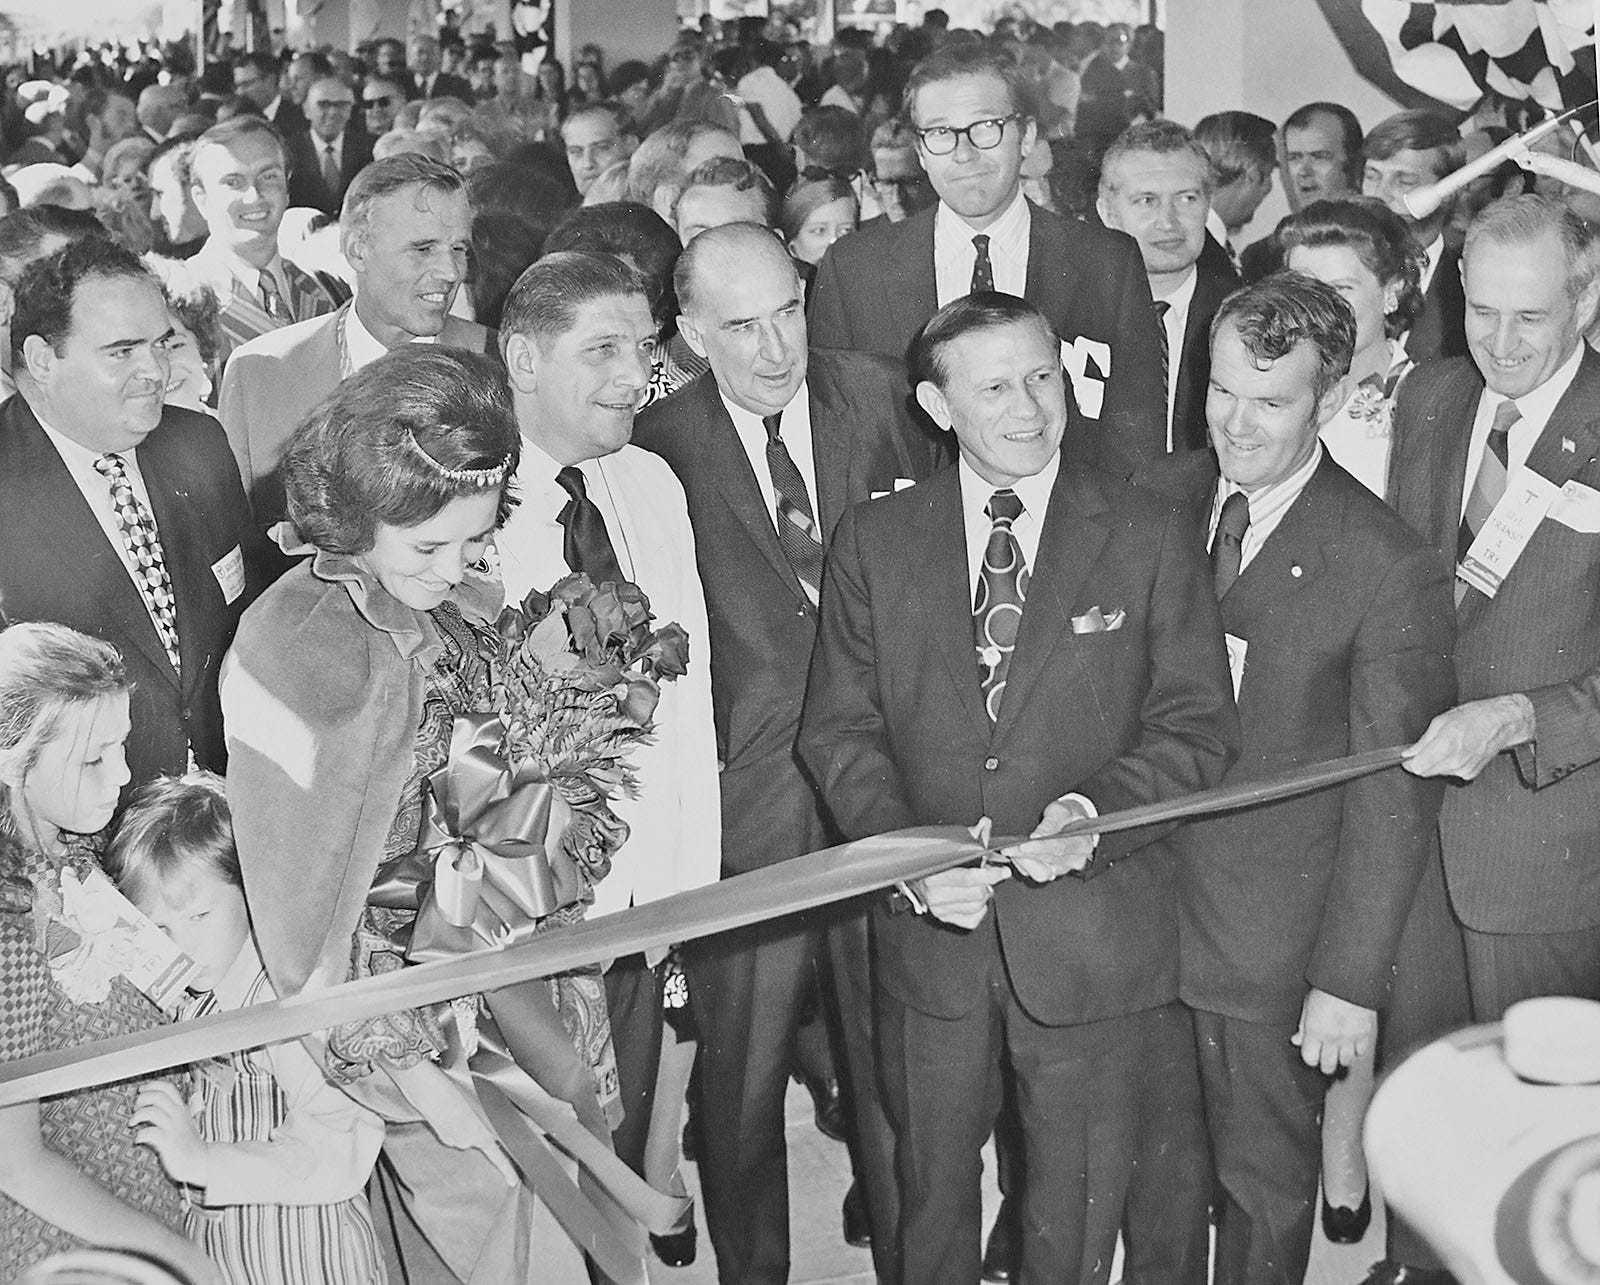 A photograph of the ribbon cutting of the Red Line extension in Quincy from the collection of Bradley Clarke, of Boston, transit historian and president of The Boston Street Railway Association.